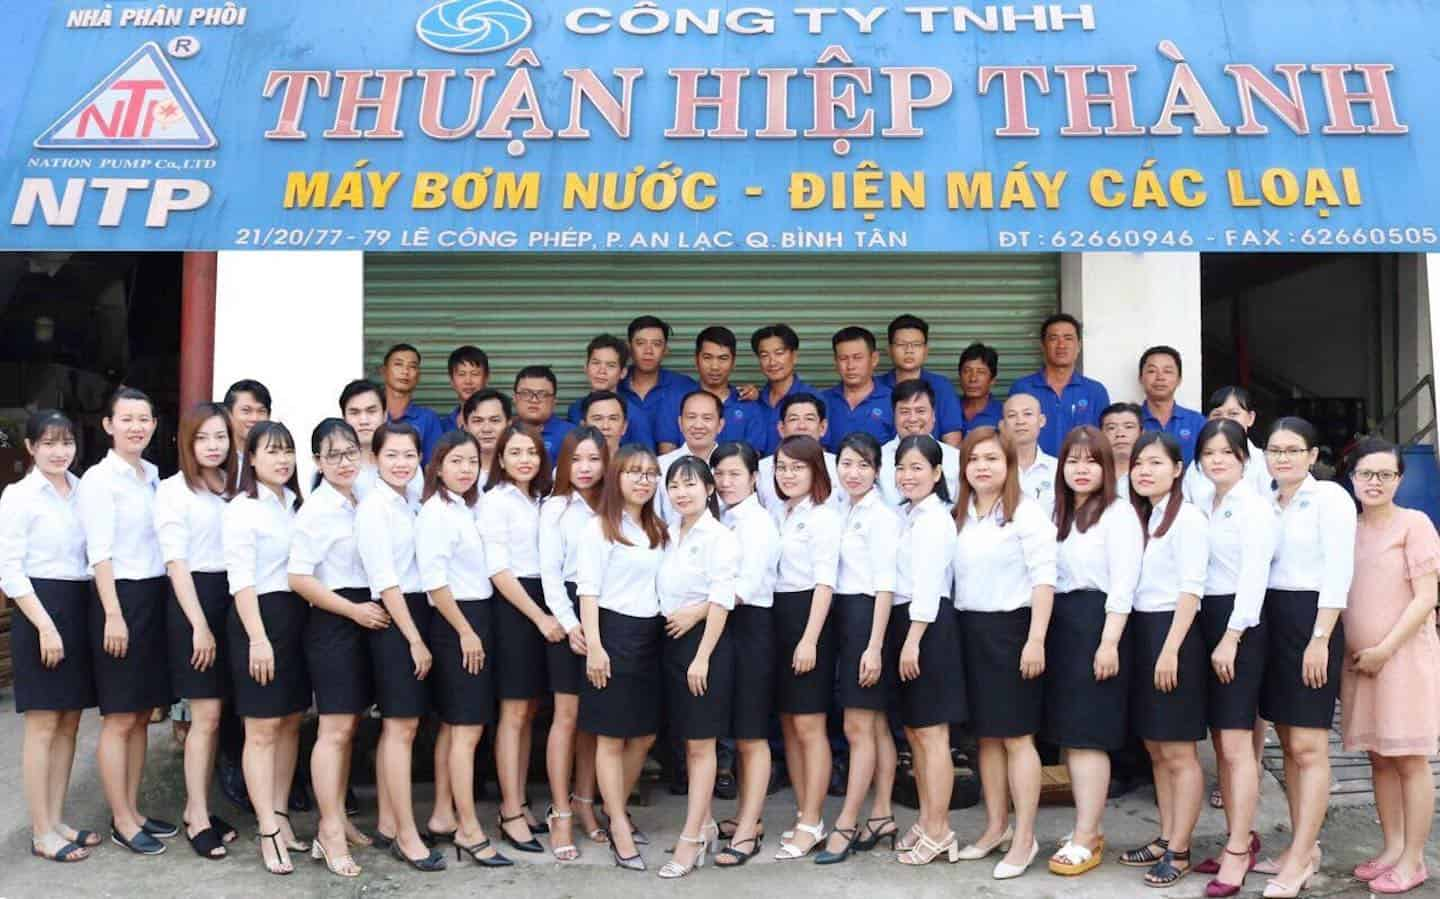 cong-ty-thuan-hiep-thanh-1